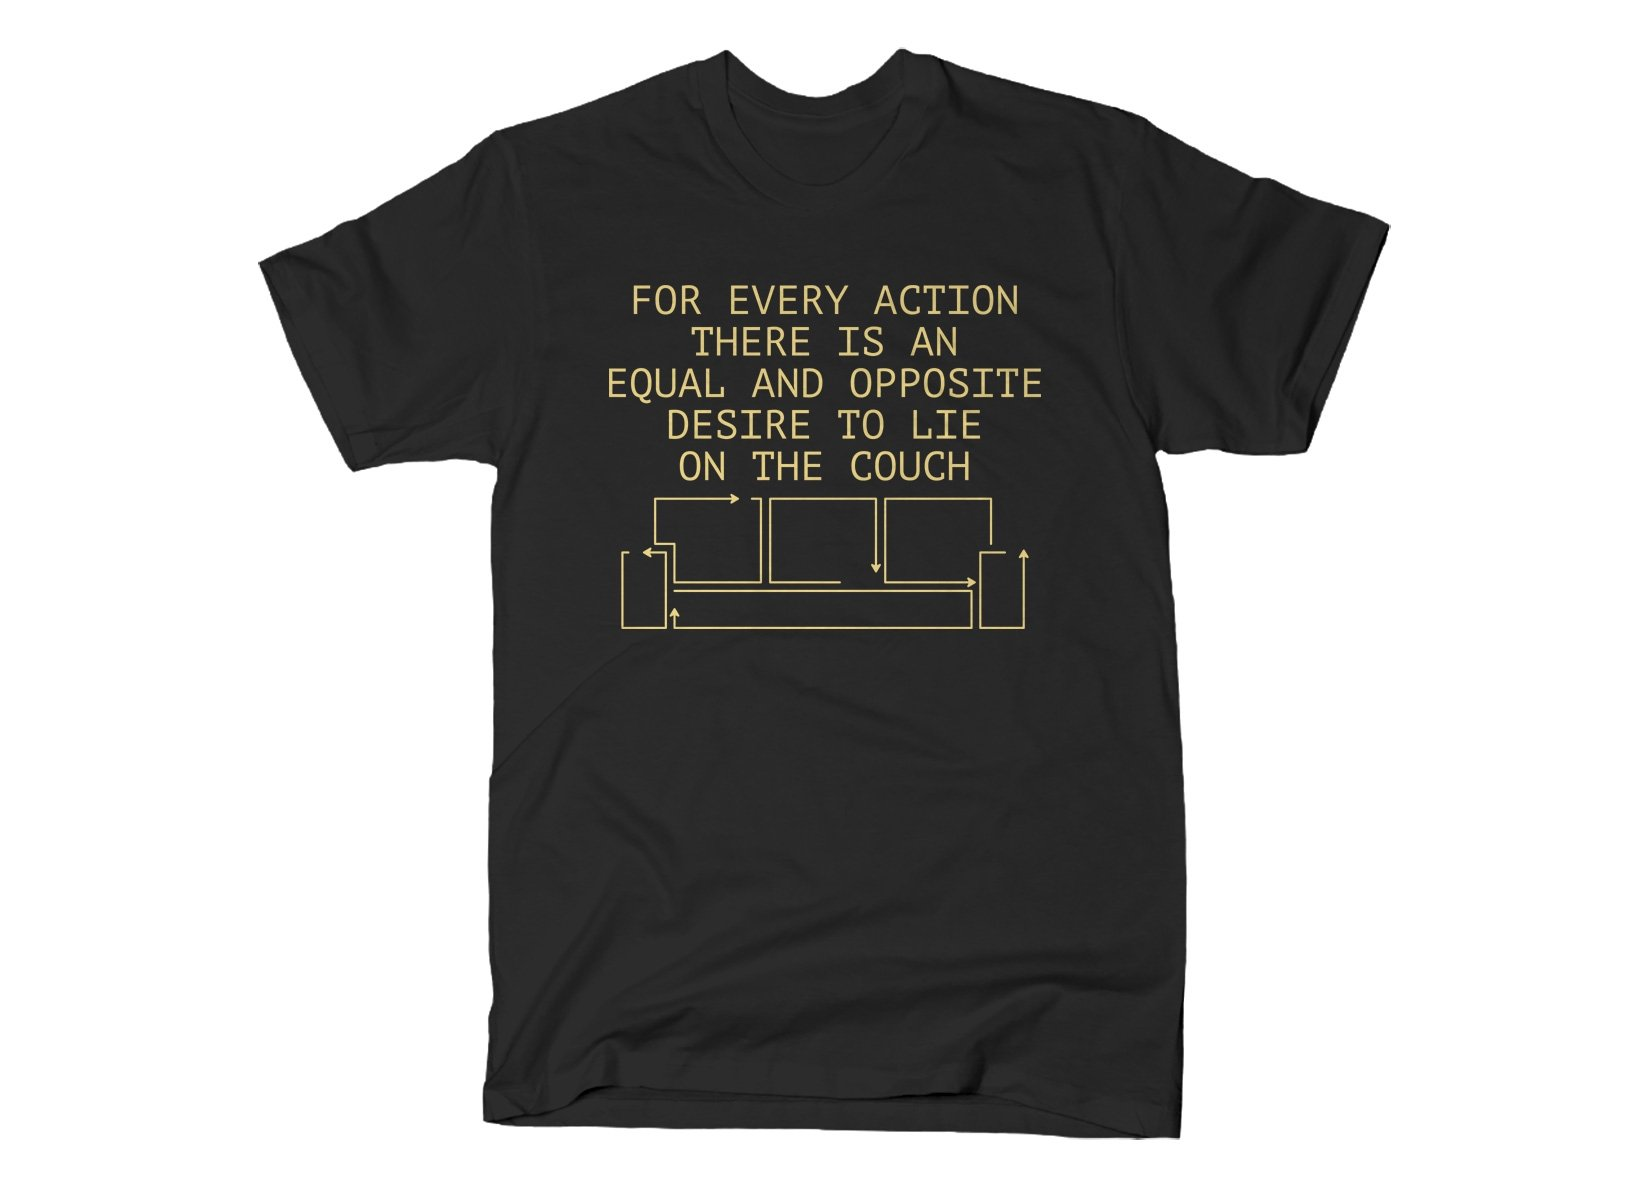 For Every Action There Is An Equal And Opposite Desire To Lie On The Couch on Mens T-Shirt